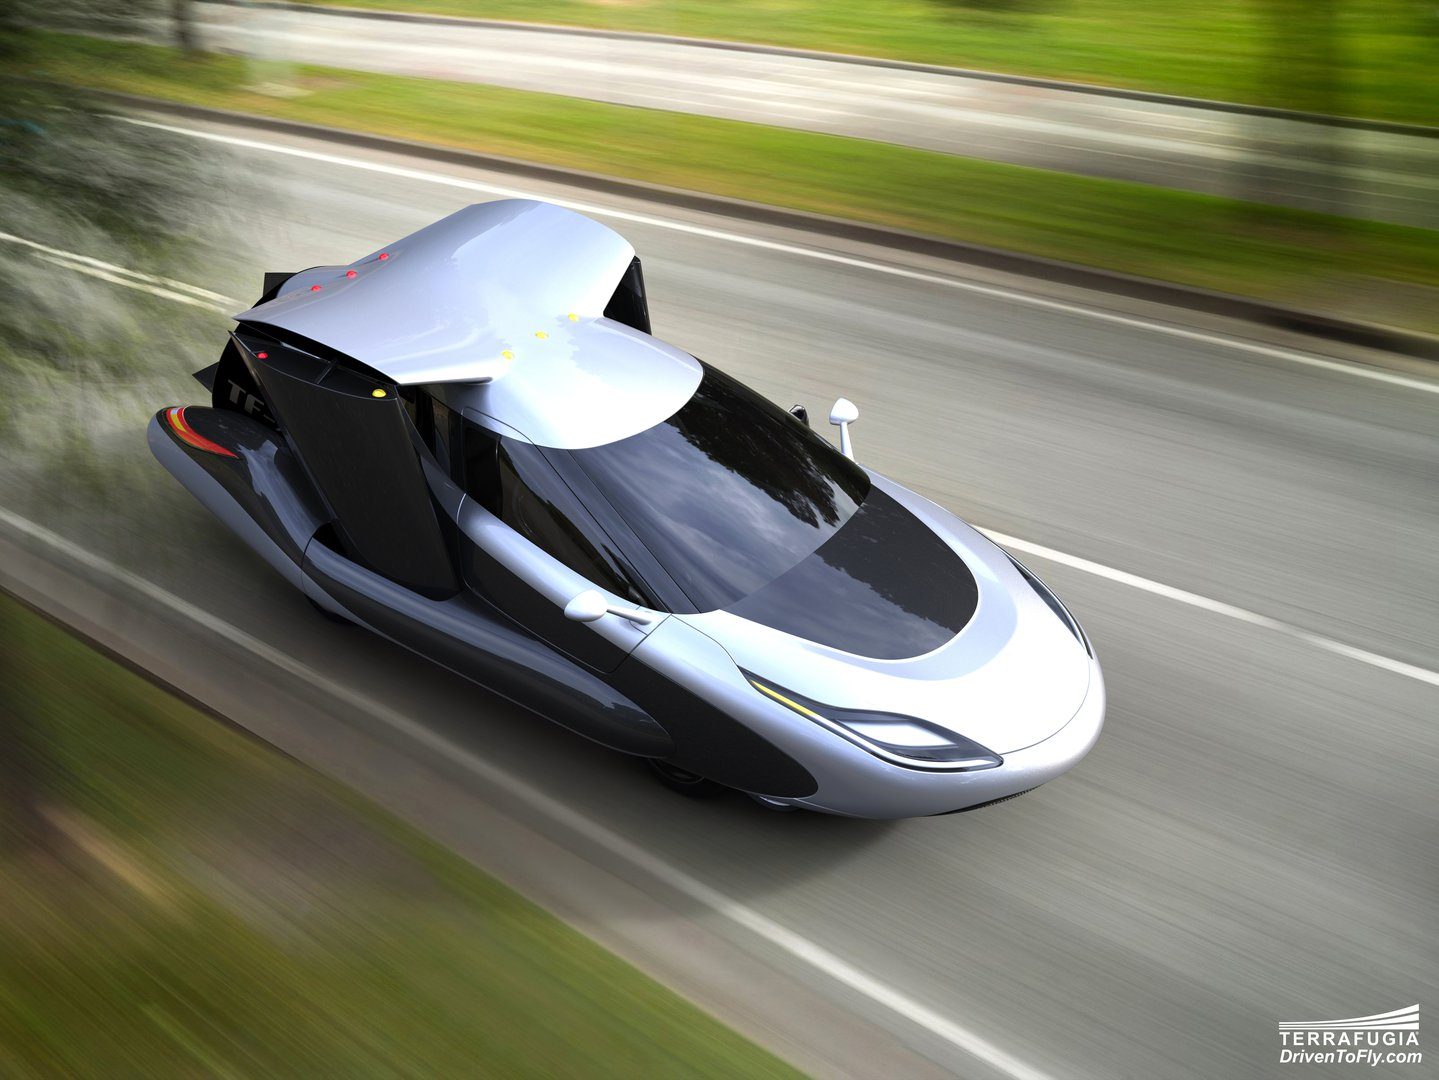 Terrafugia S Flying Car For All Of Us To Take Over The Skies In